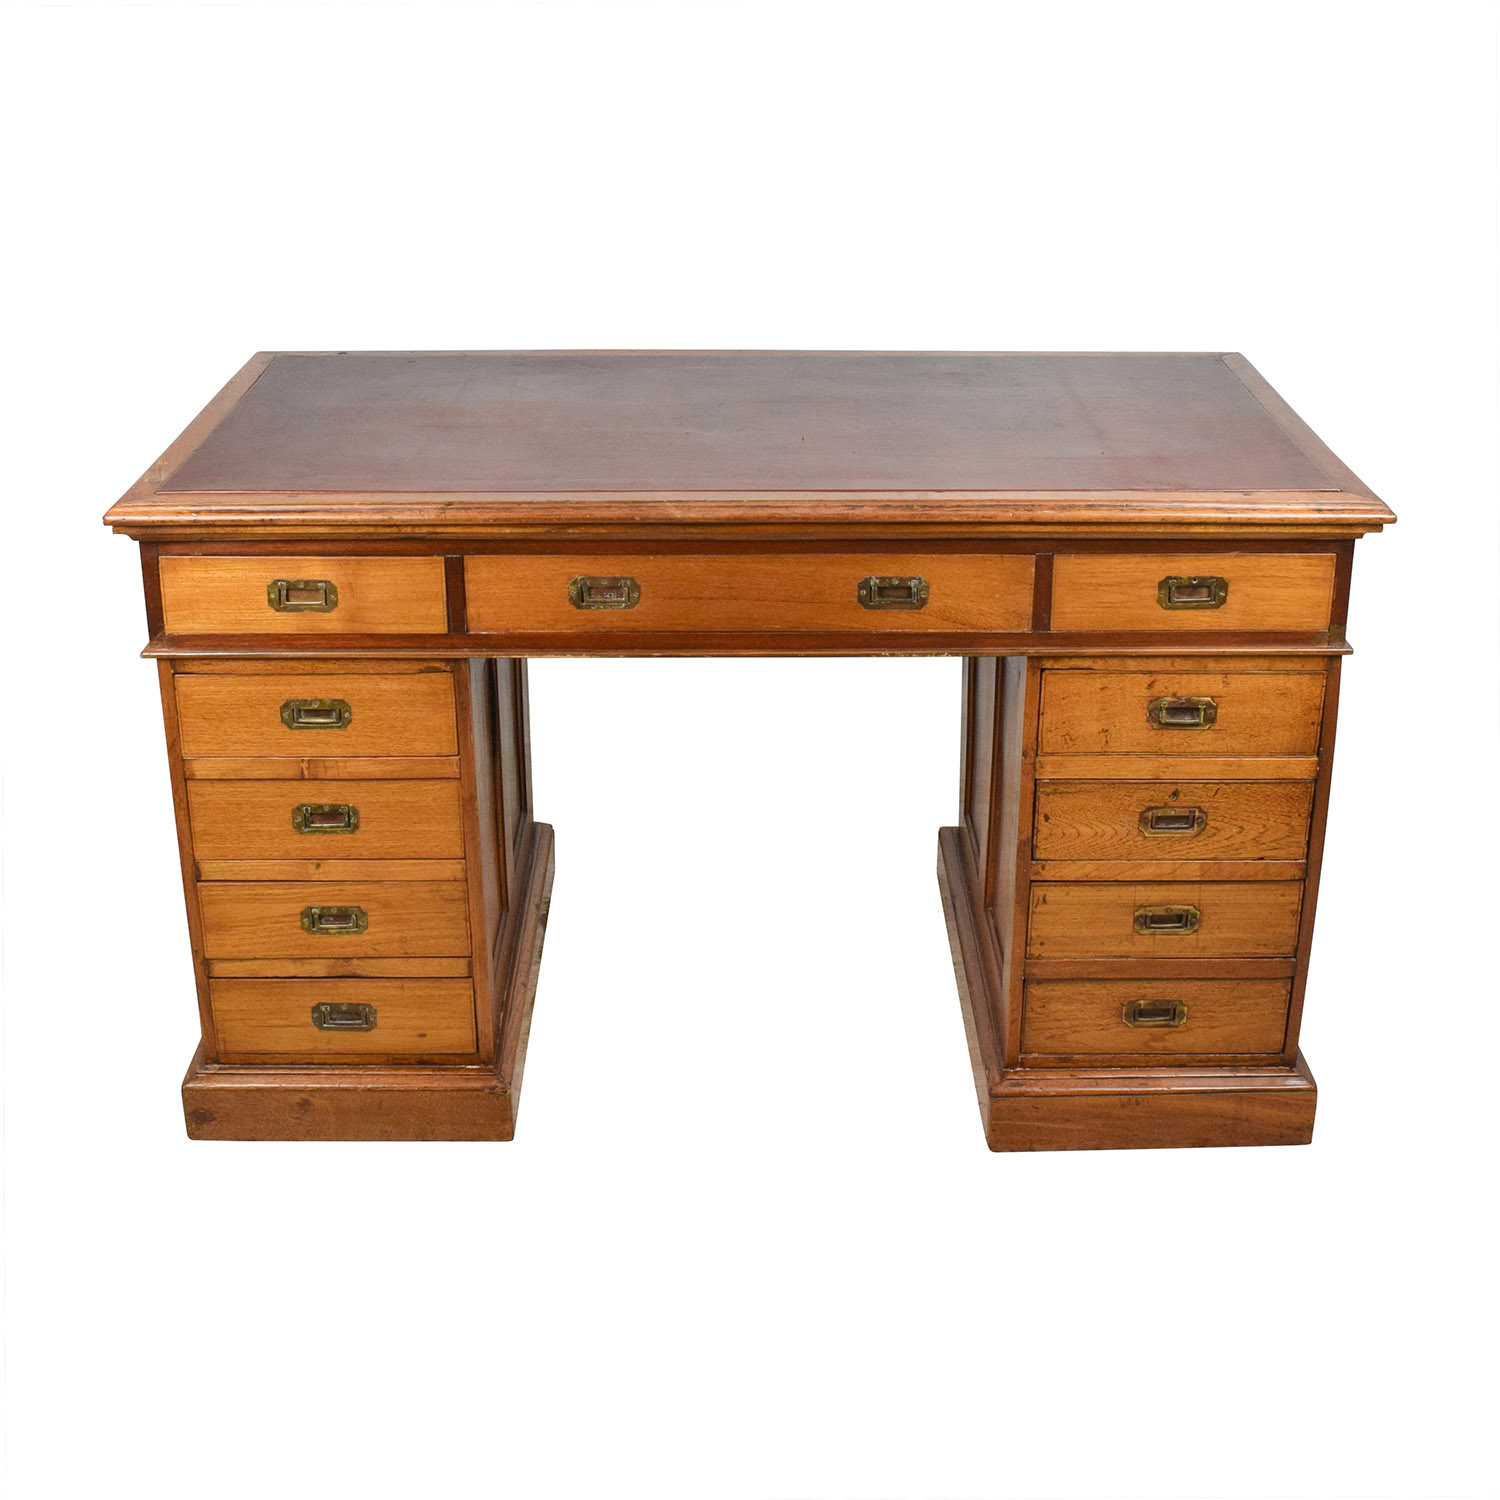 Eron Johnson Antiques English Colonial Teak Pedestal Desk sale